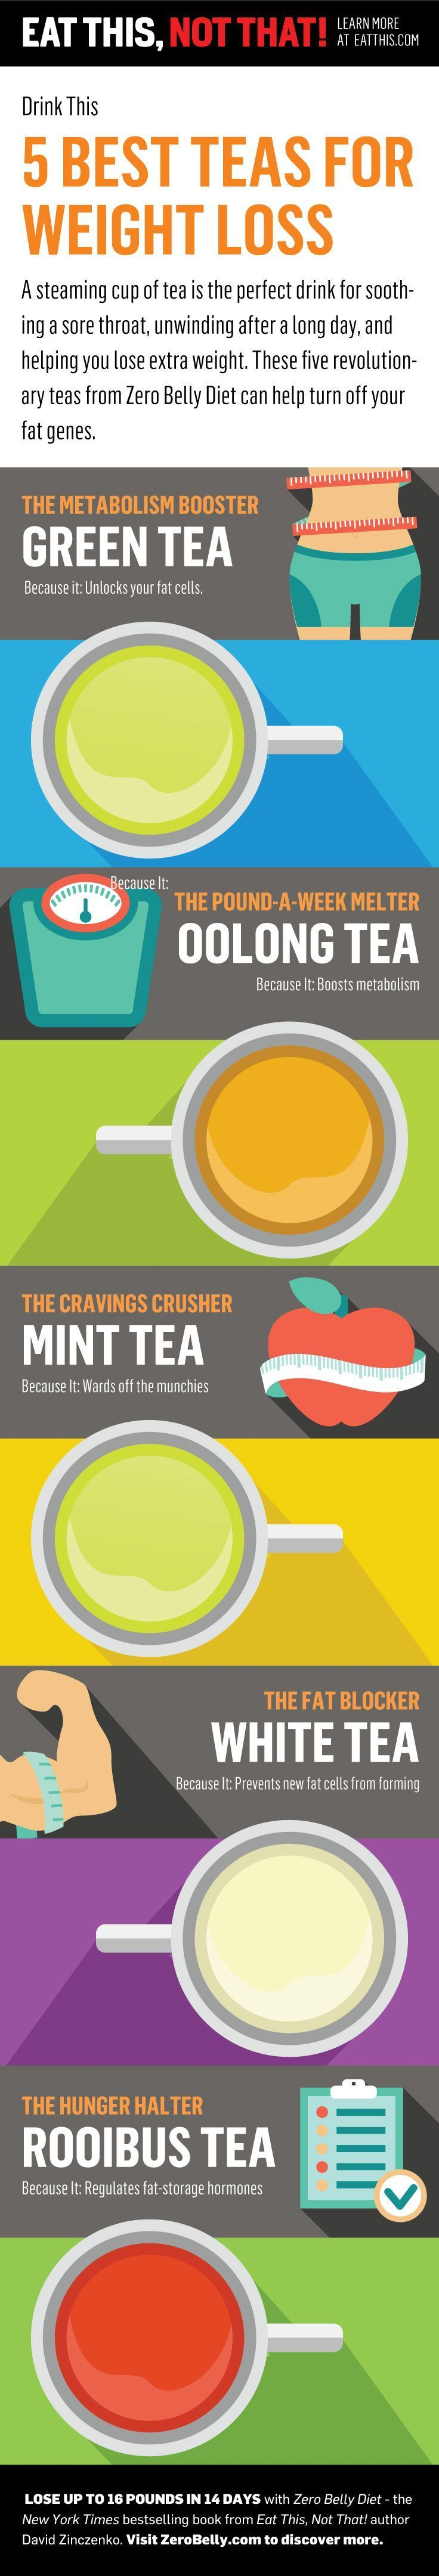 Crank up the heat and sip yourself slim if you're you're serious about banishing your belly fat. Get to know these 5 teas that melt fat!